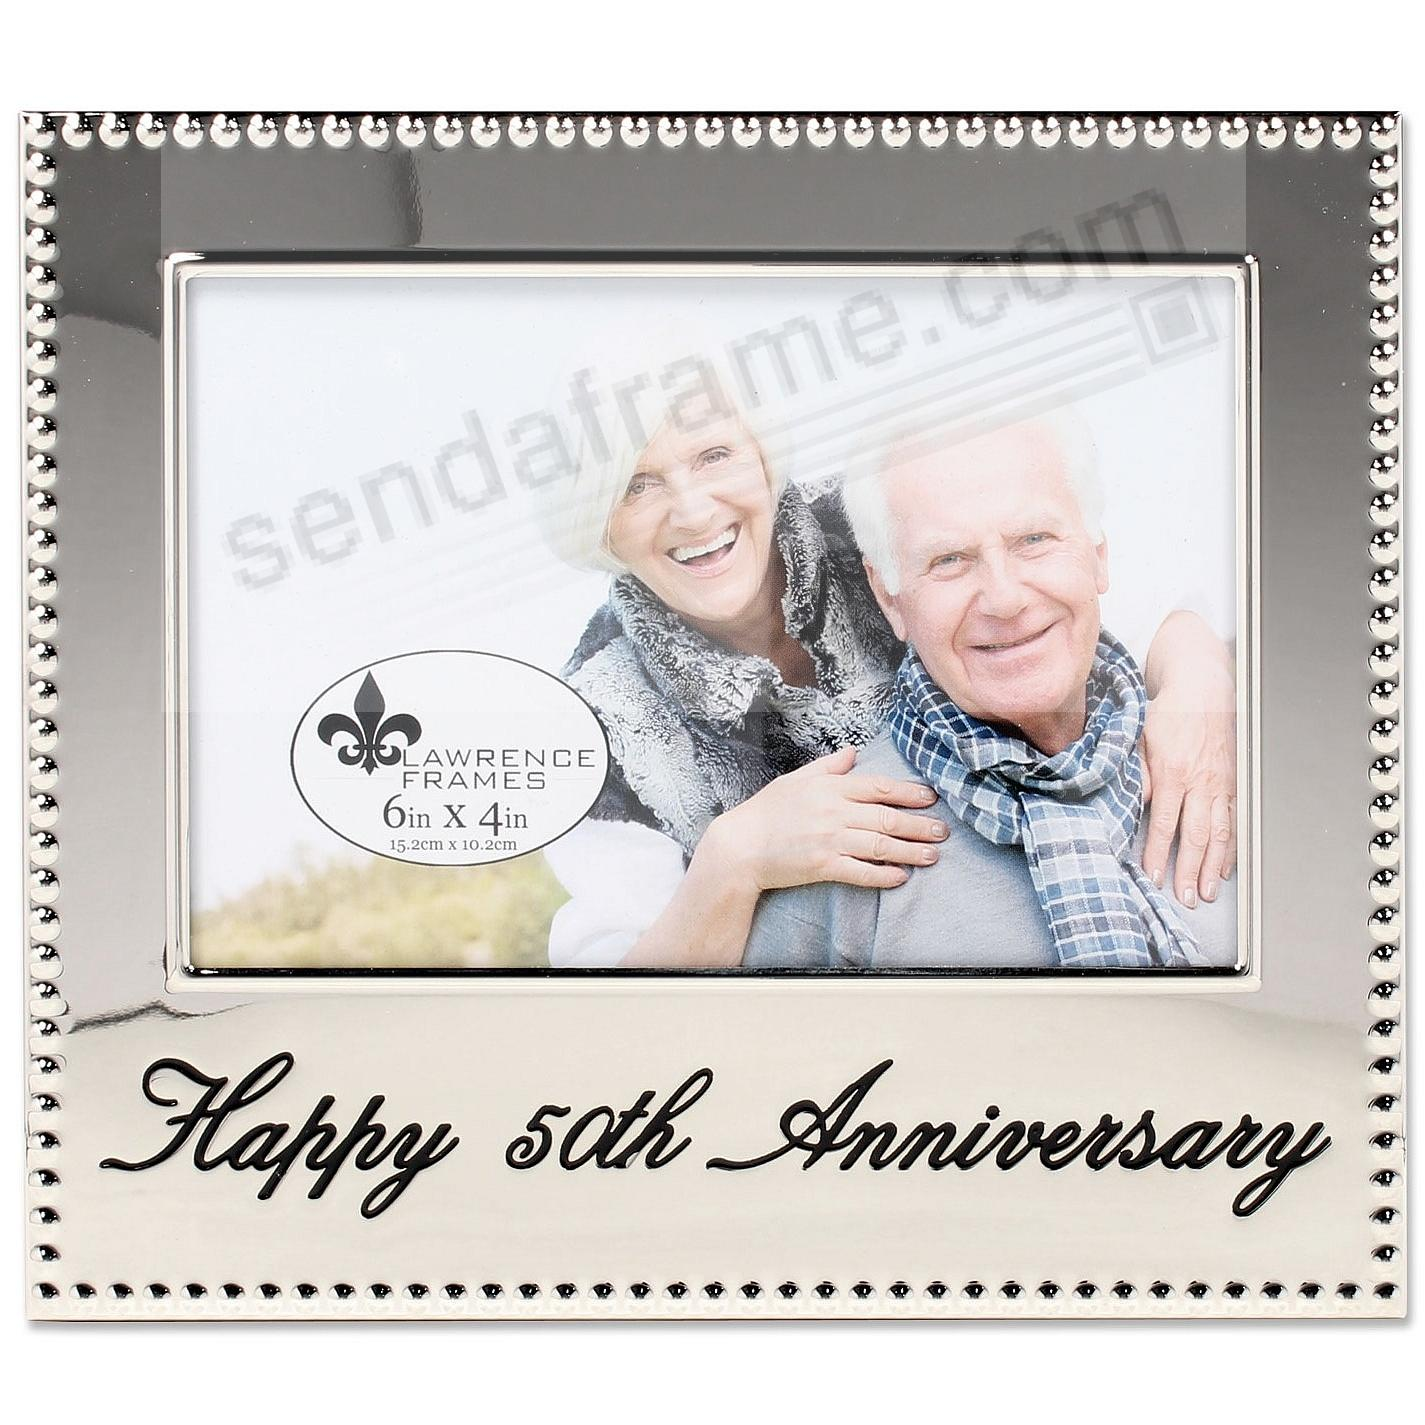 HAPPY 50th ANNIVERSARY special engraved celebration frame